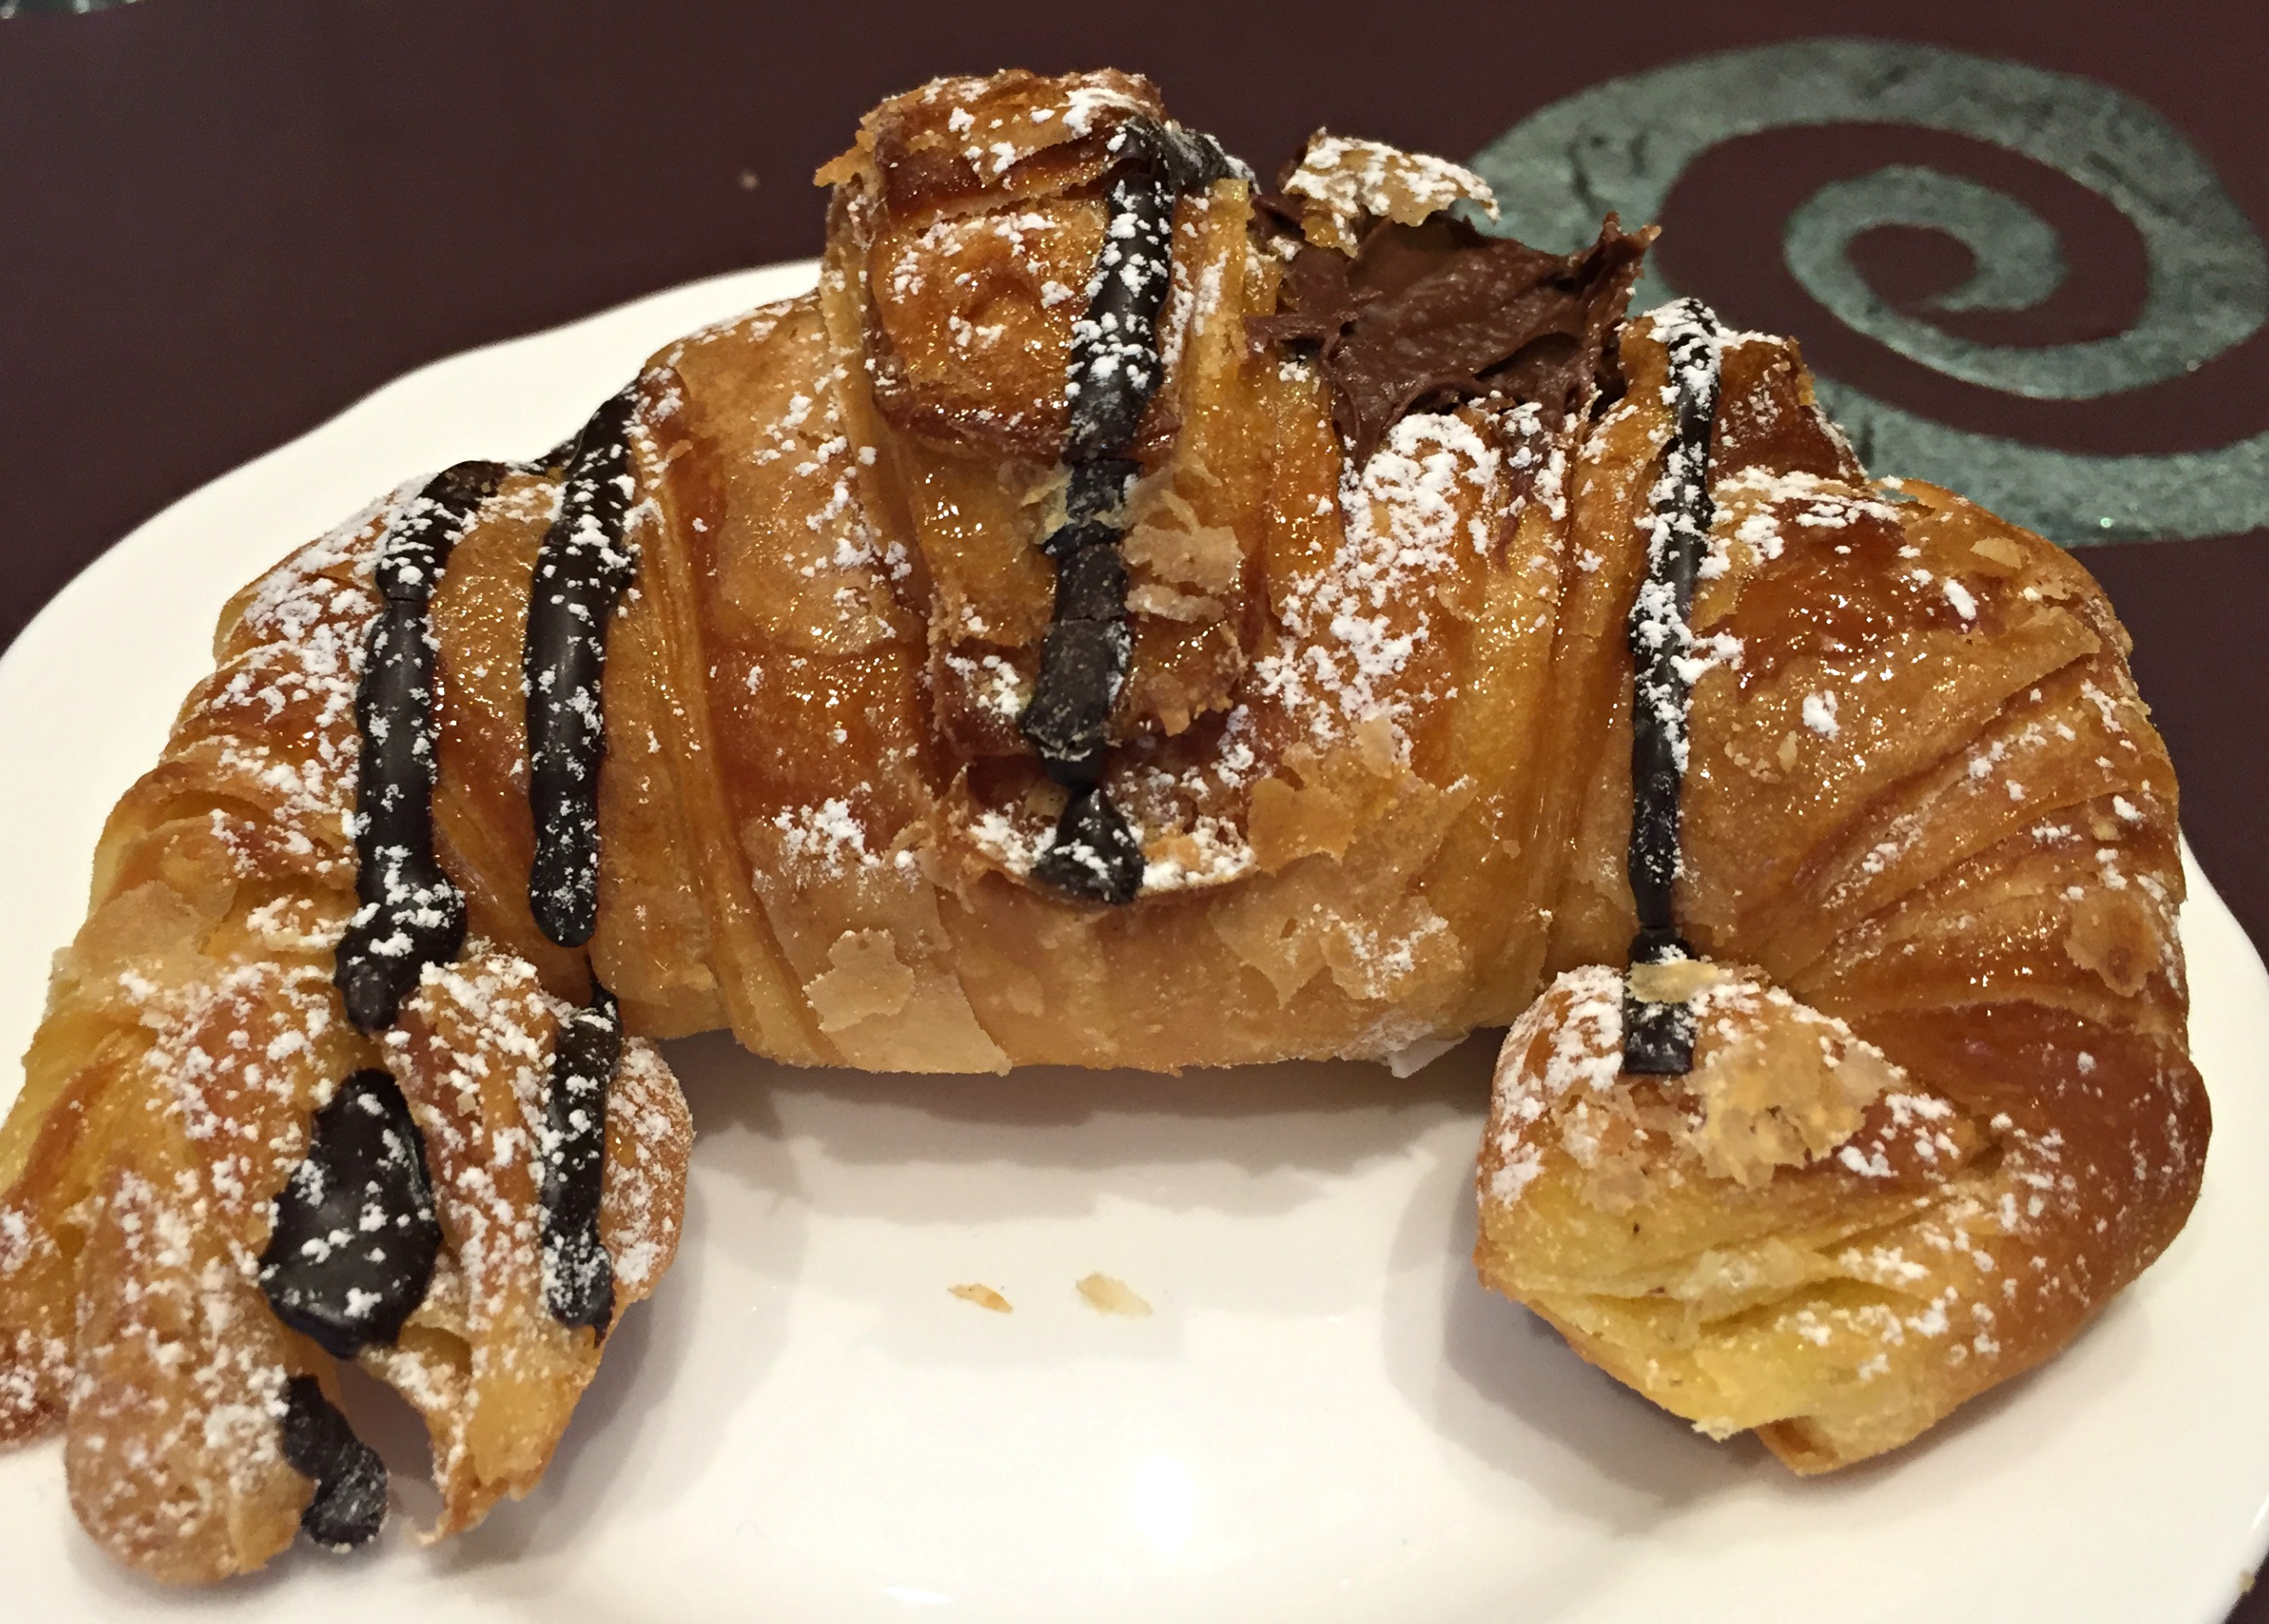 Chocolate Coissant